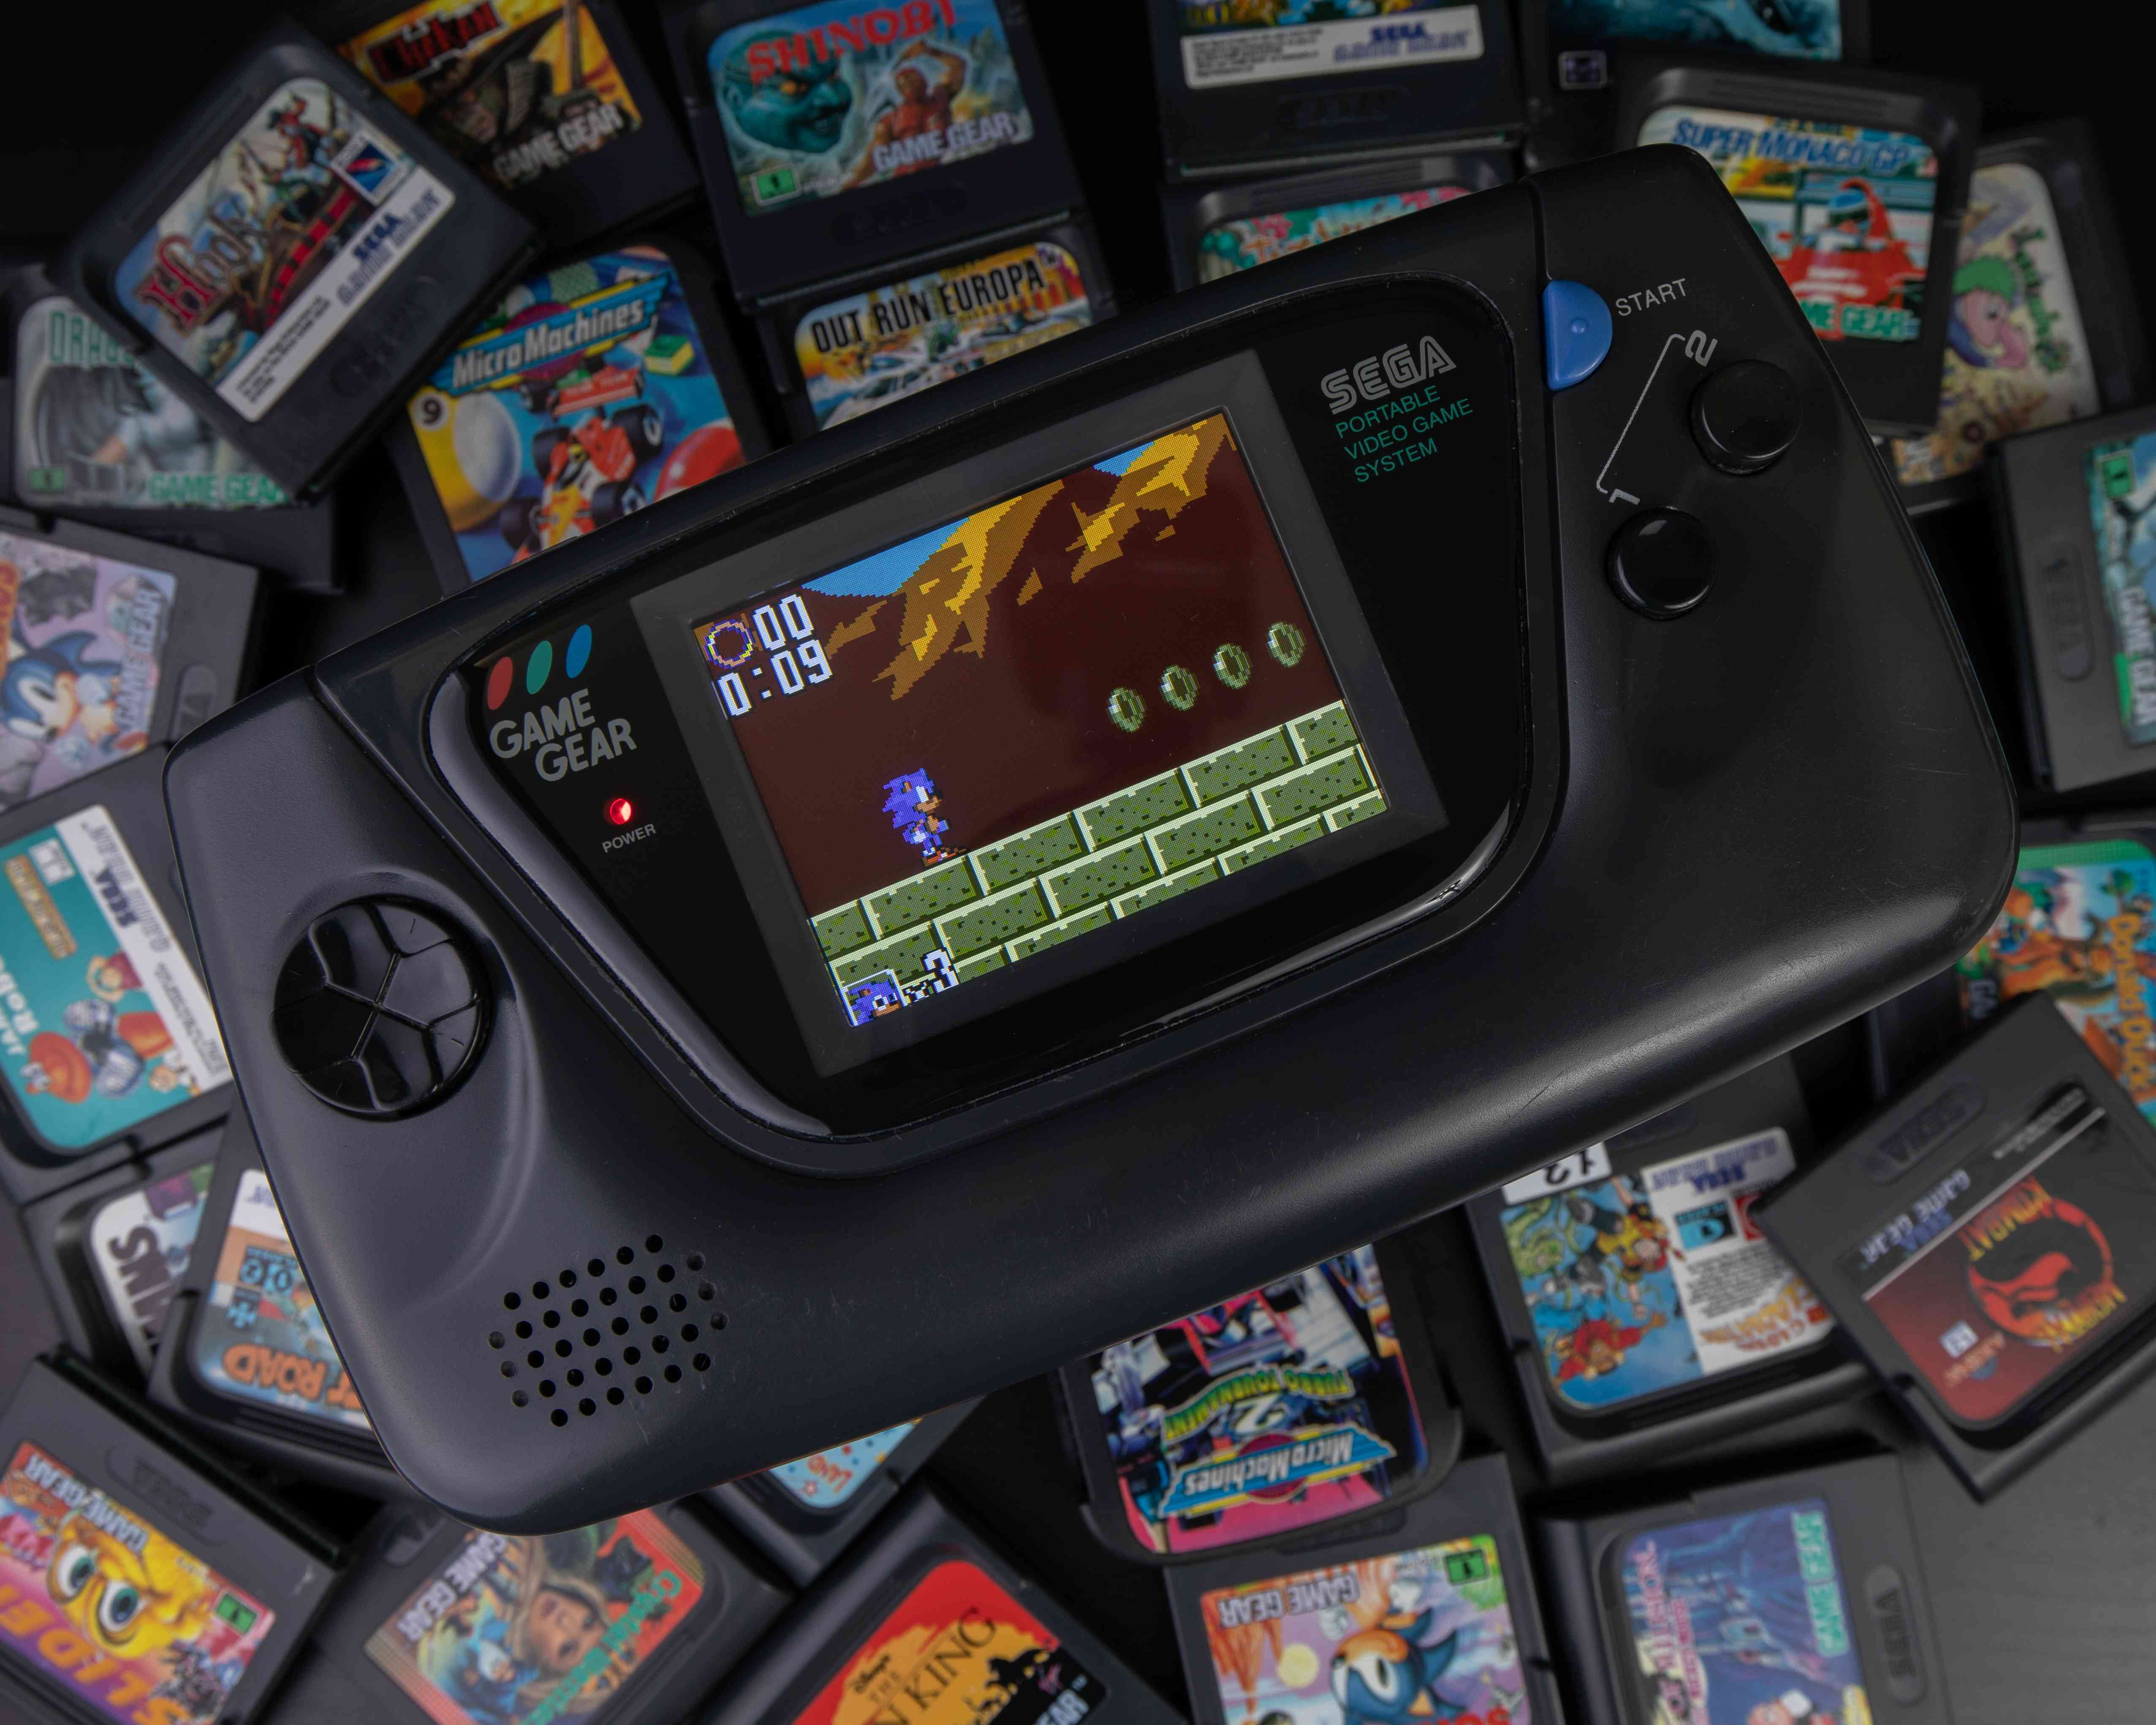 A Sega console surrounded by gaming cartridges.